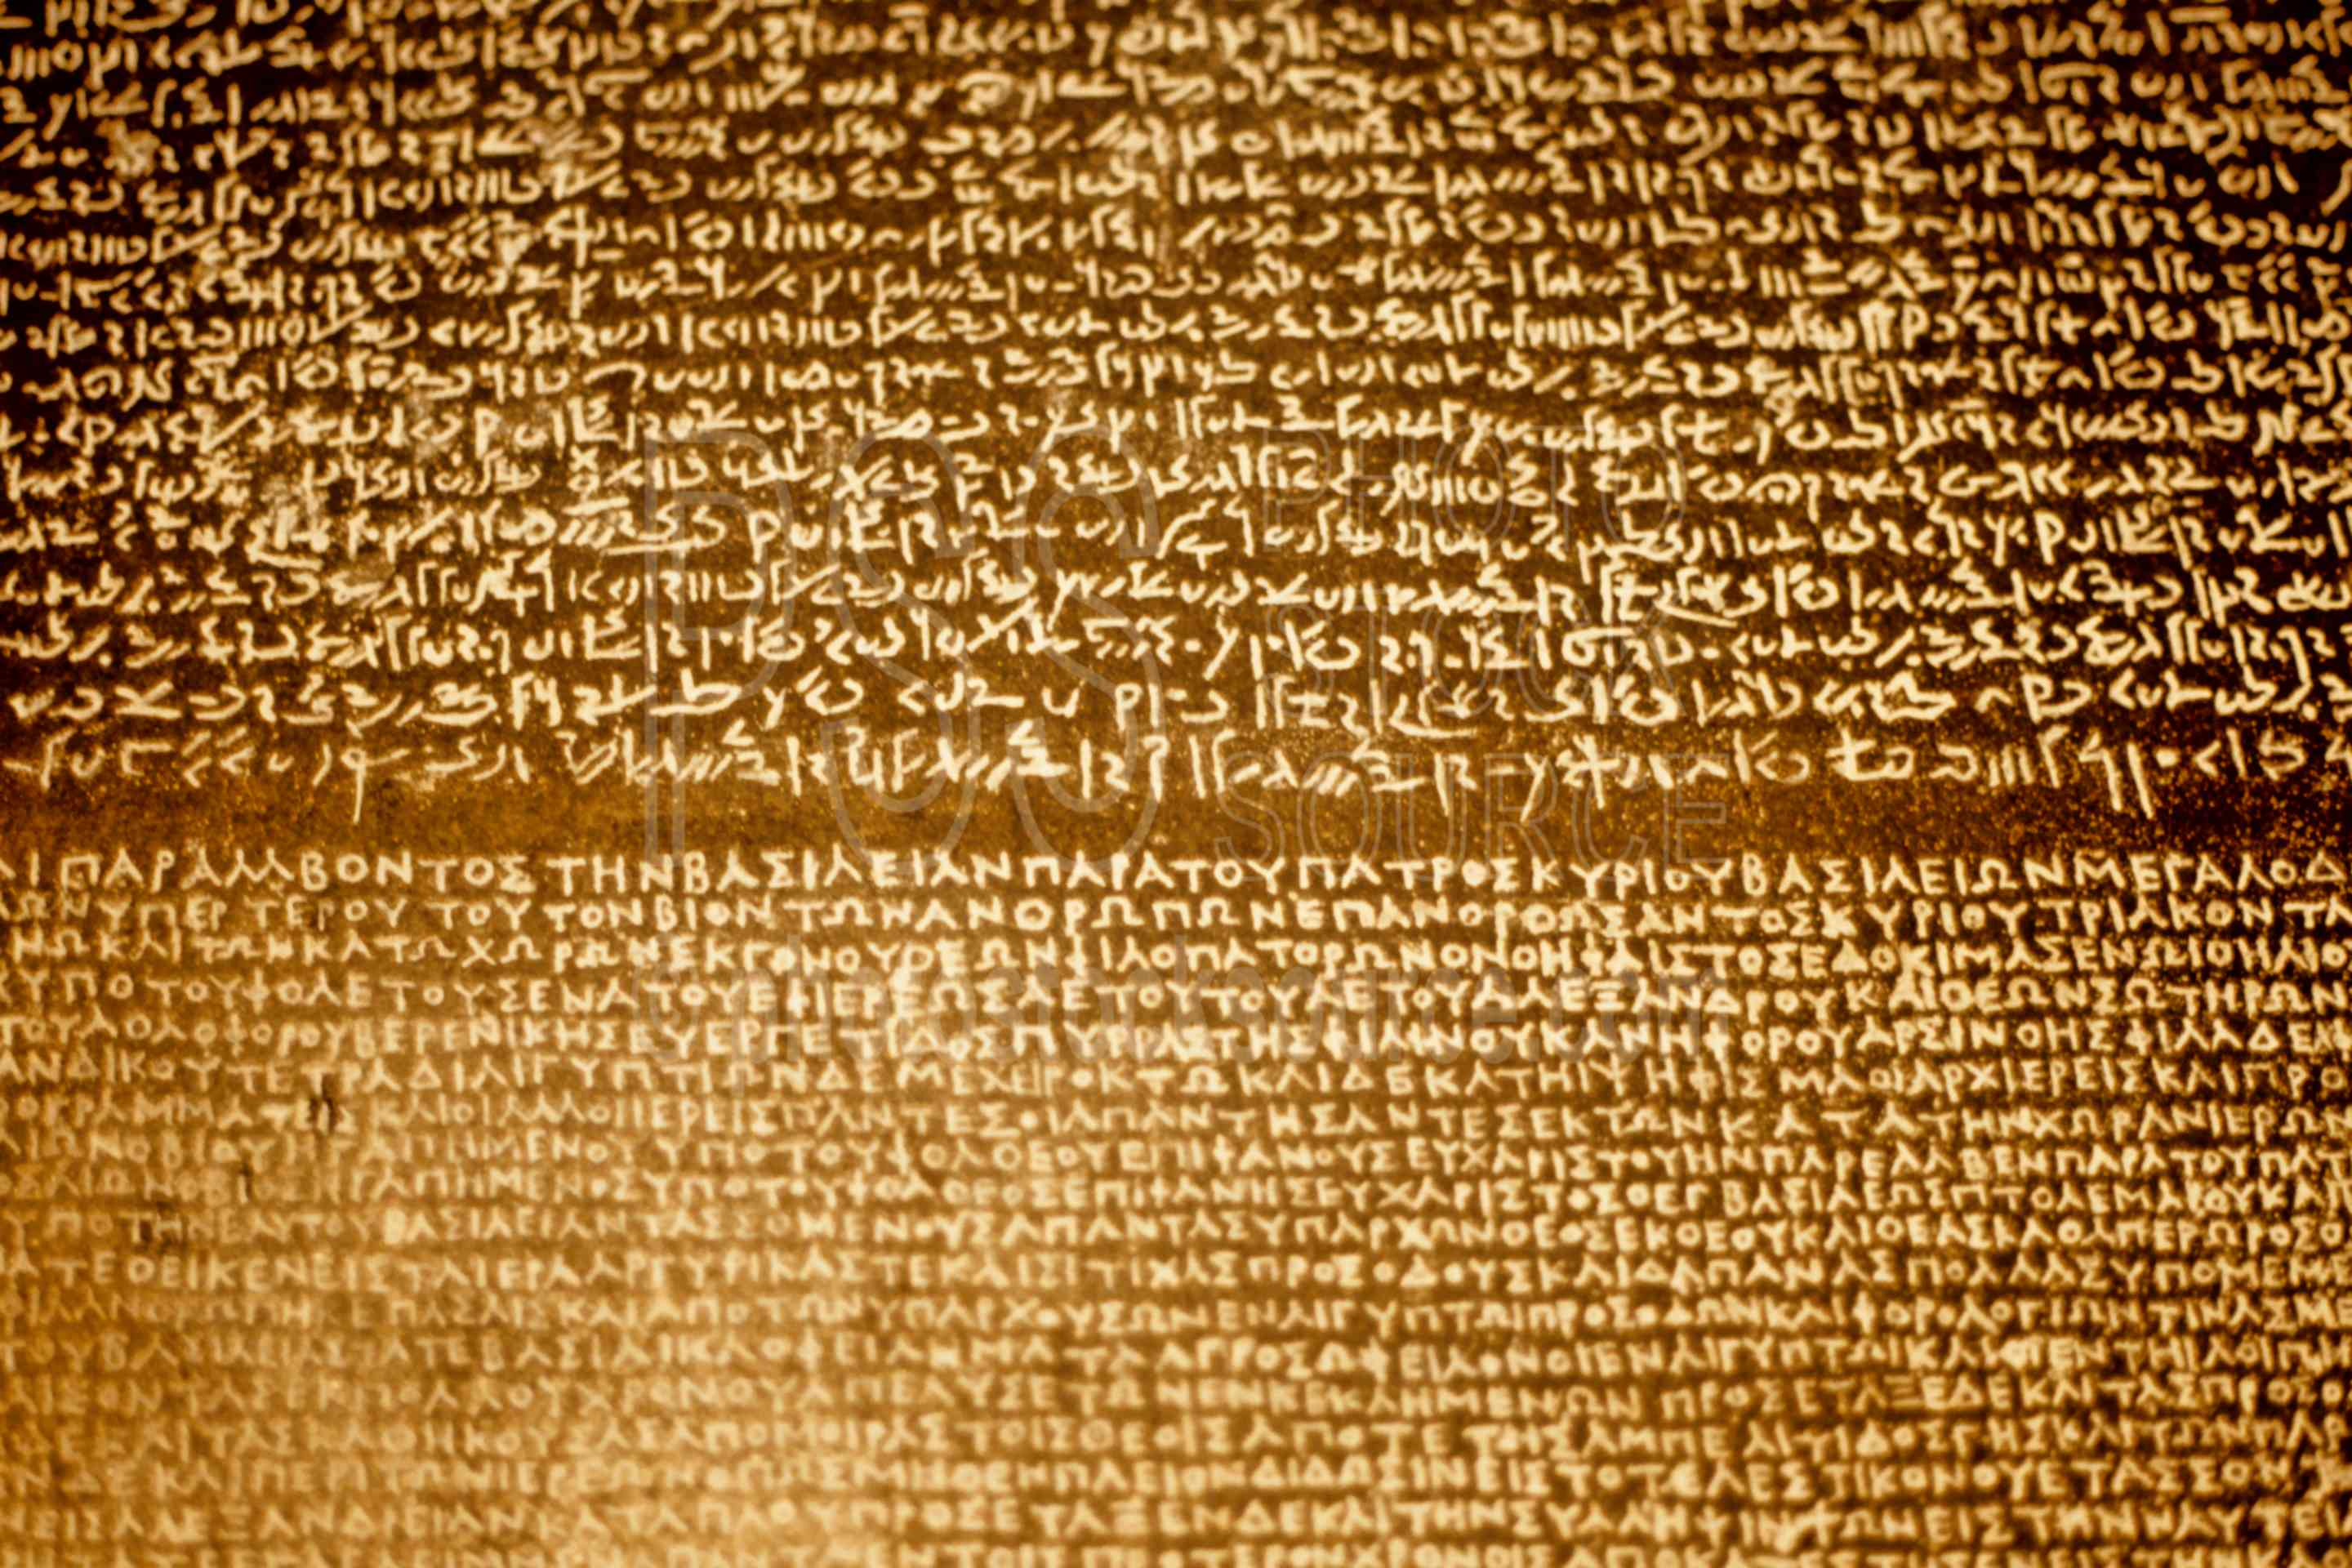 Photo Of Rosetta Stone By Photo Stock Source